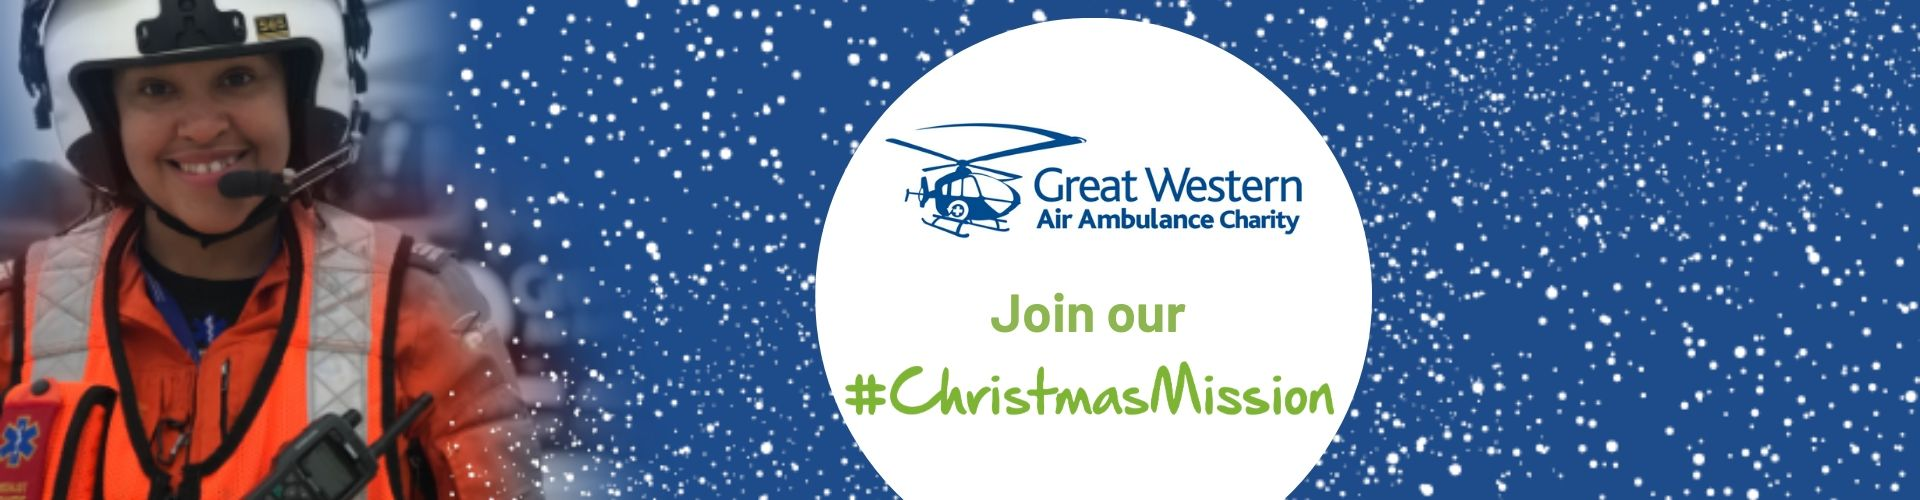 GWAAC christmas mission